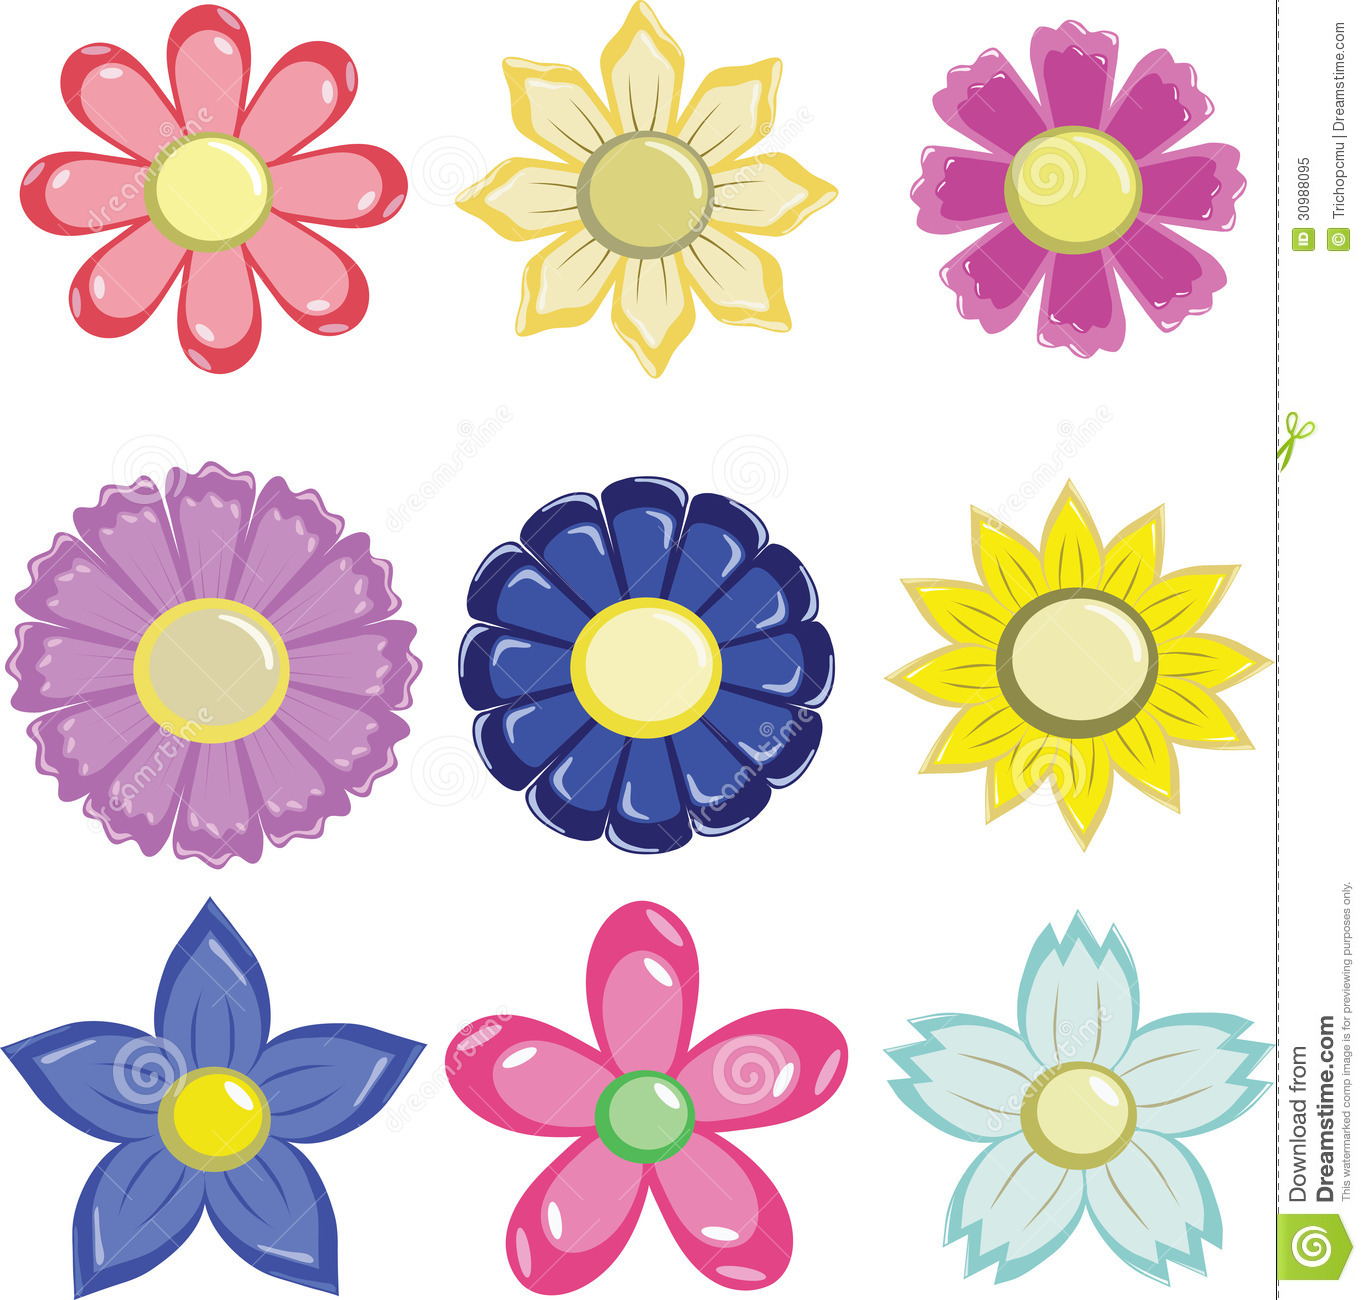 Flower graphic images clipart royalty free Flower graphic free - ClipartFest clipart royalty free